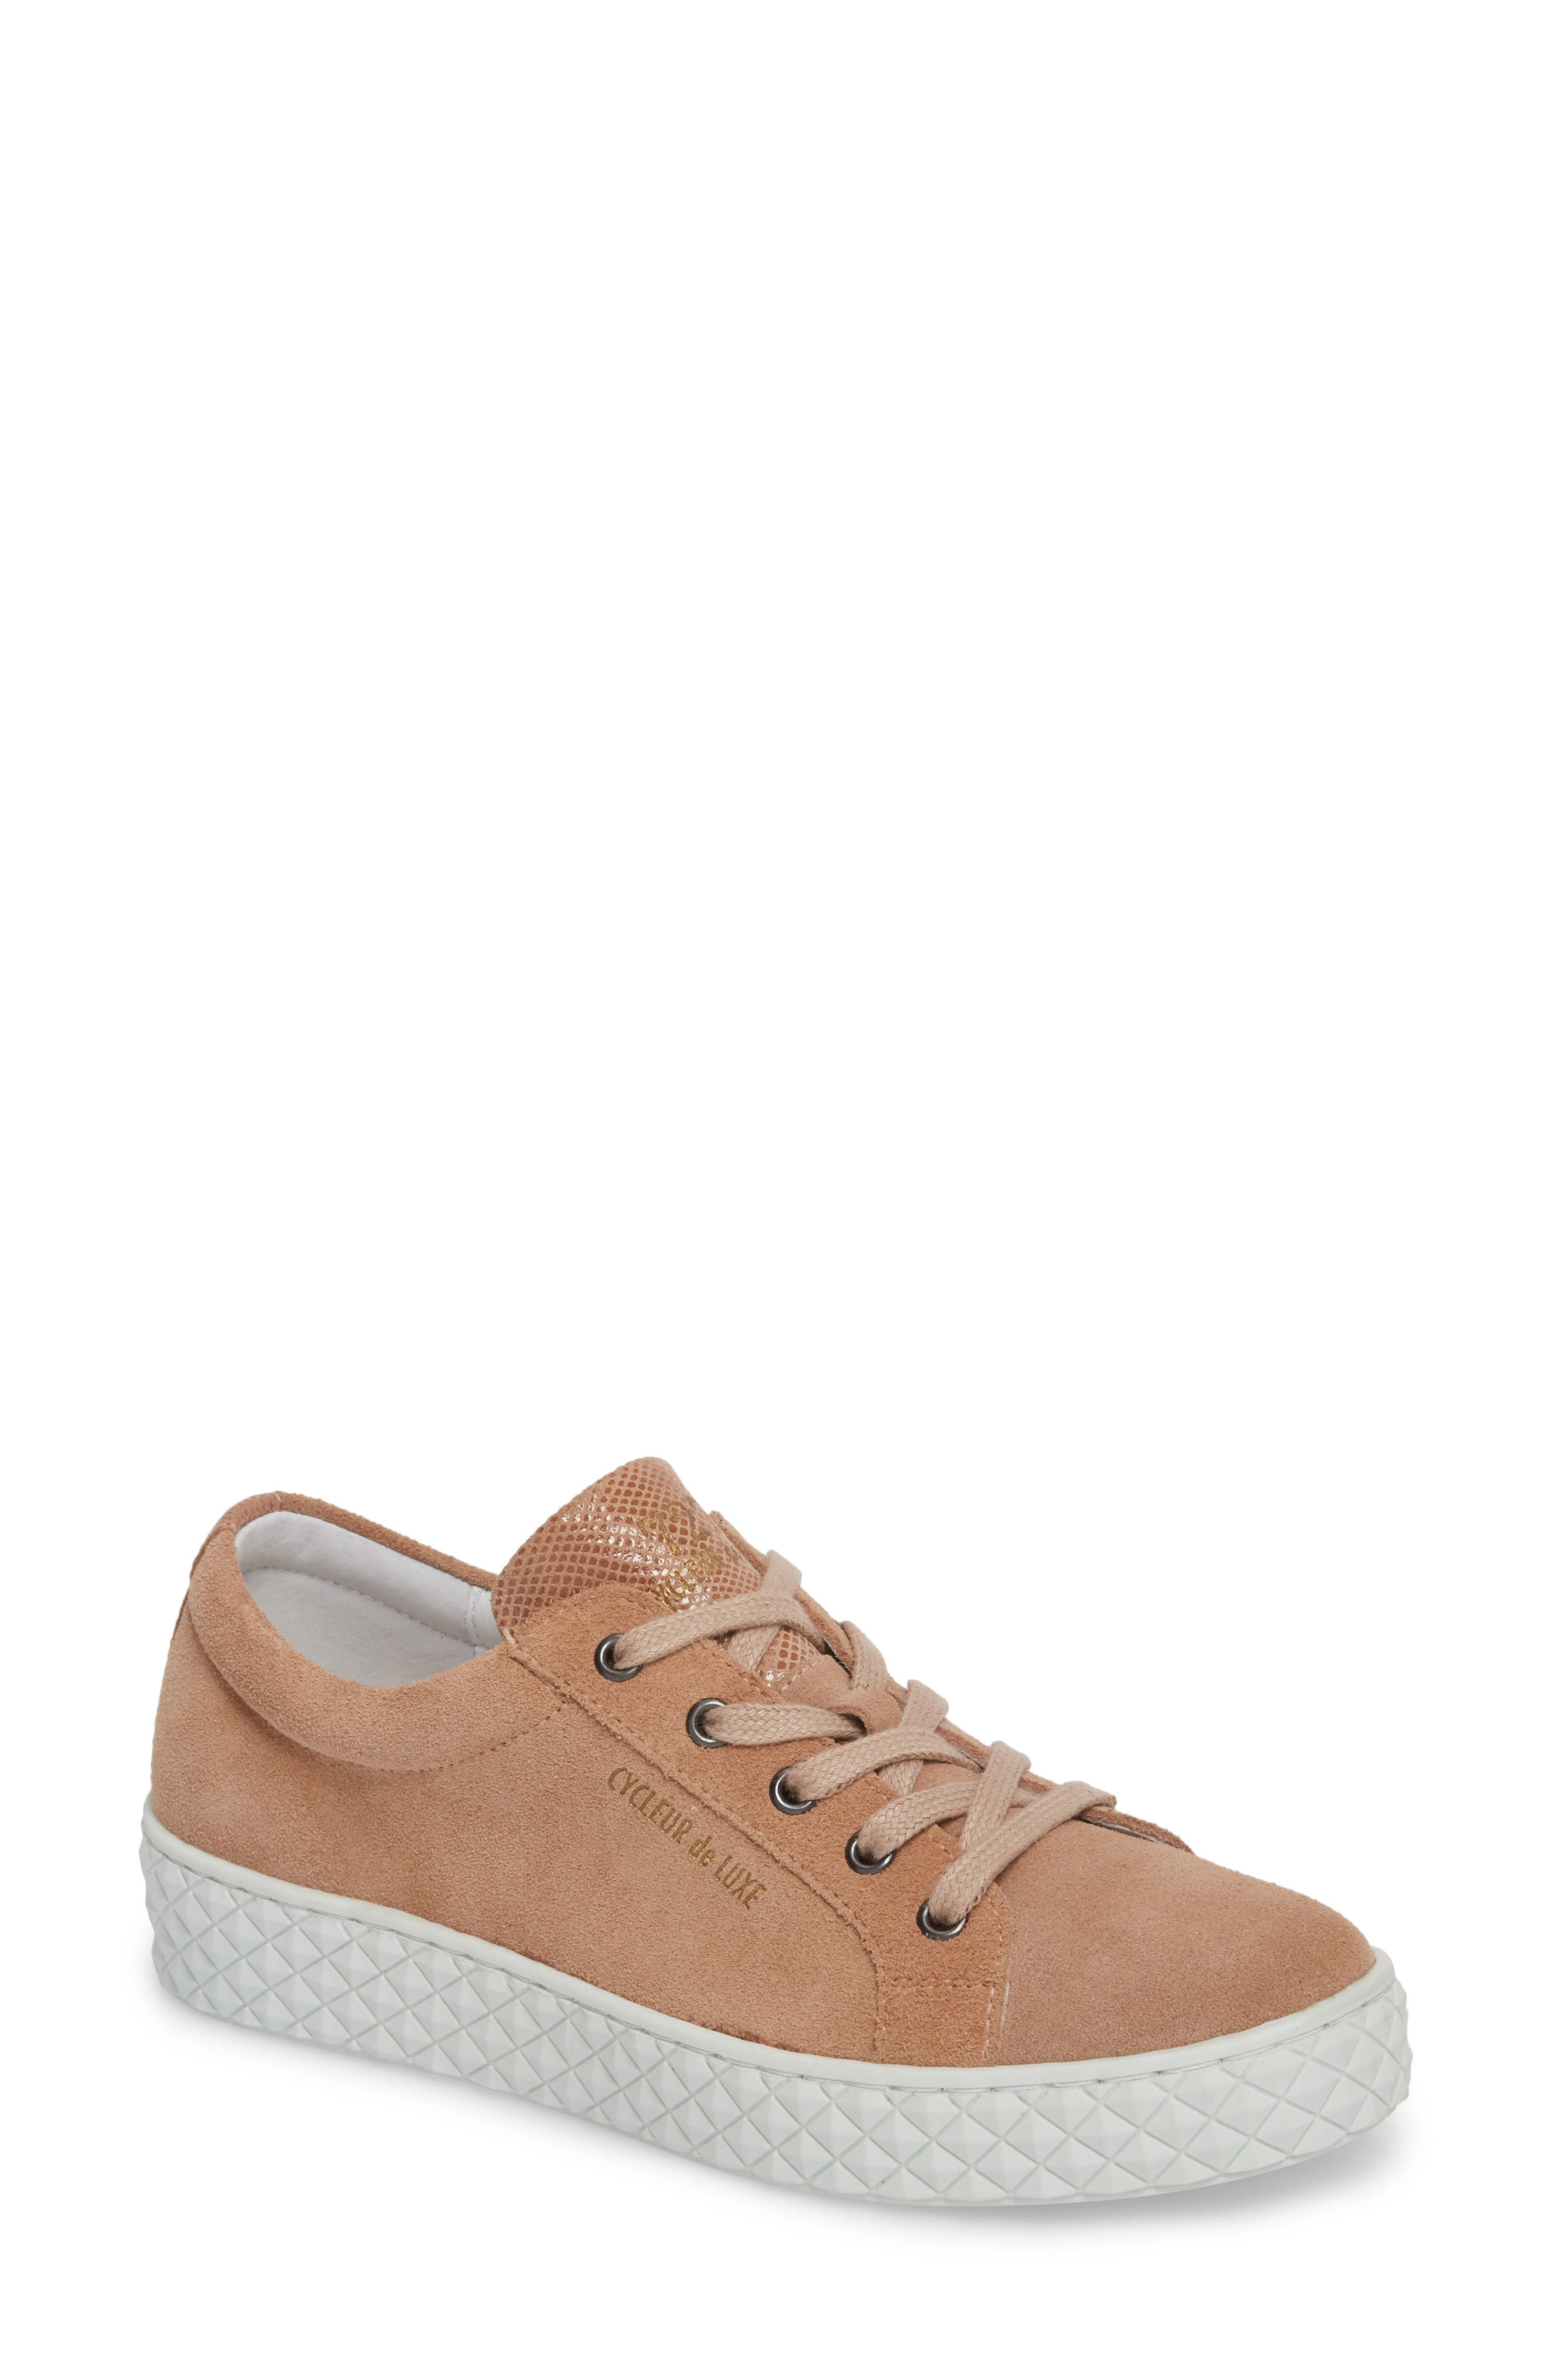 Acton II Sneaker,                         Main,                         color, DARK CIPRIA SUEDE